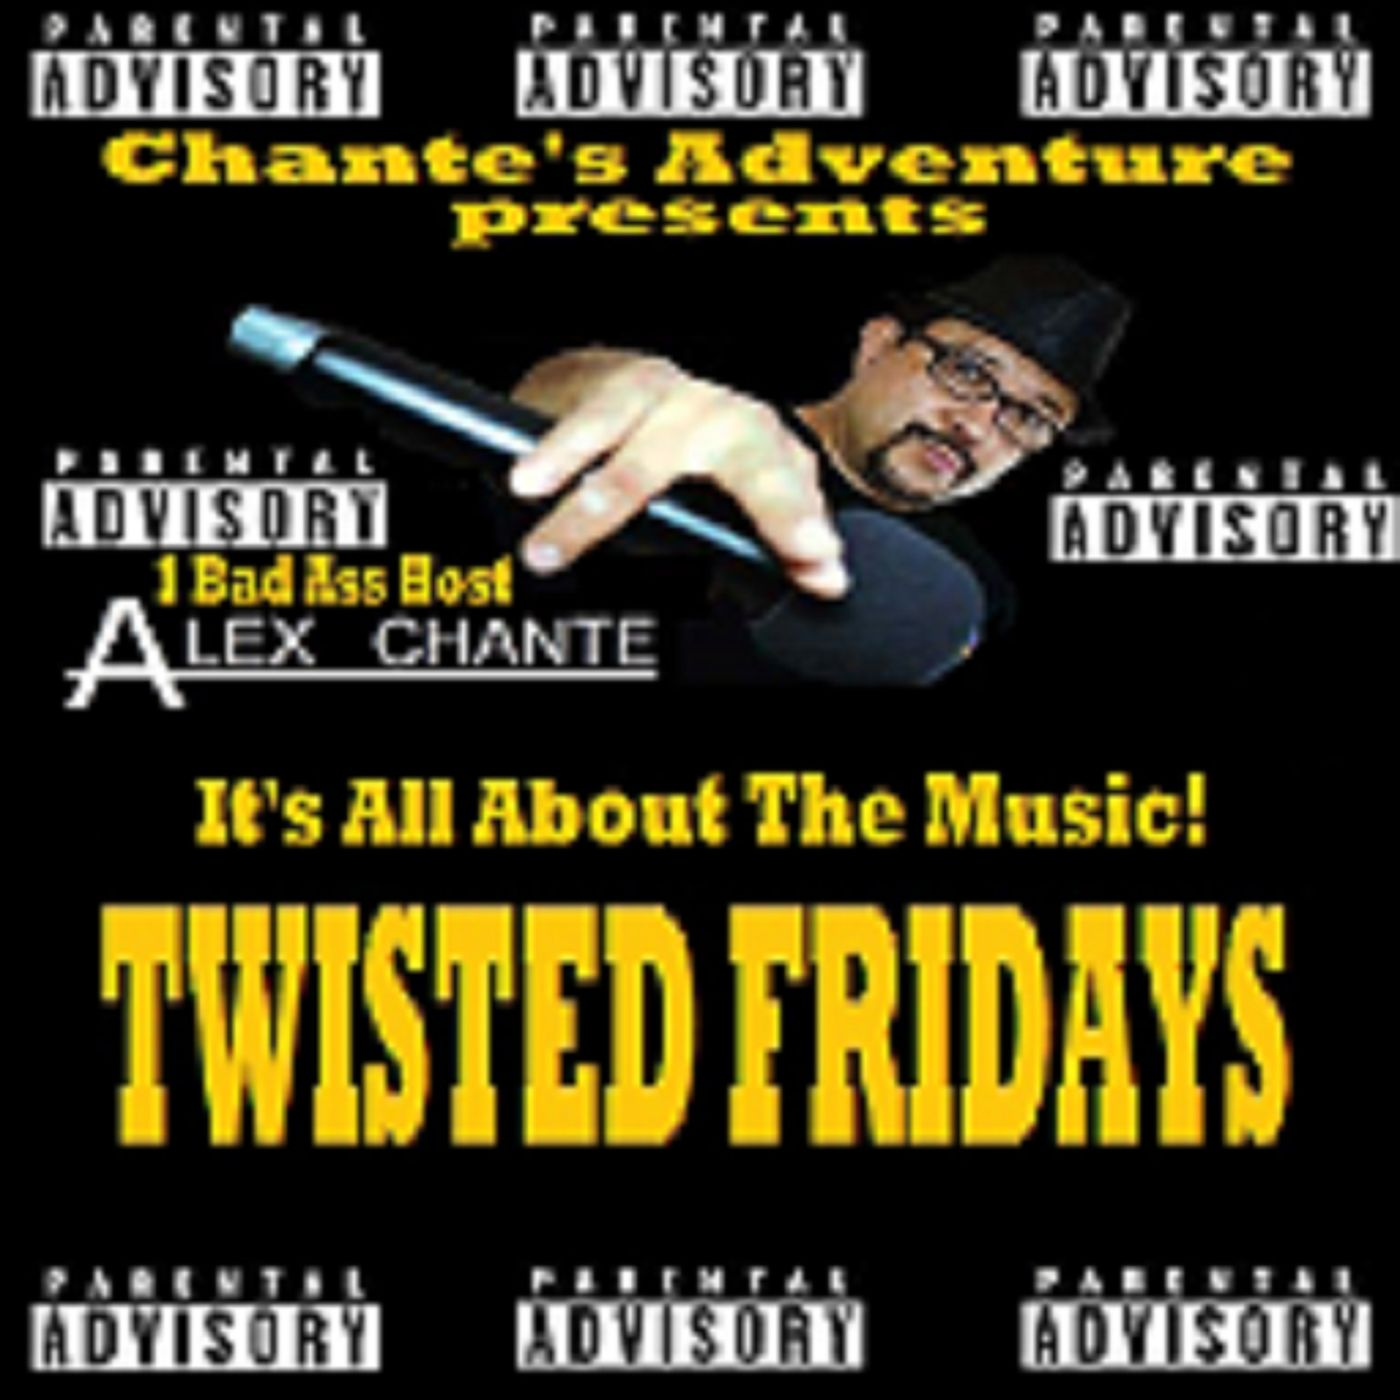 TWISTED FRIDAYS